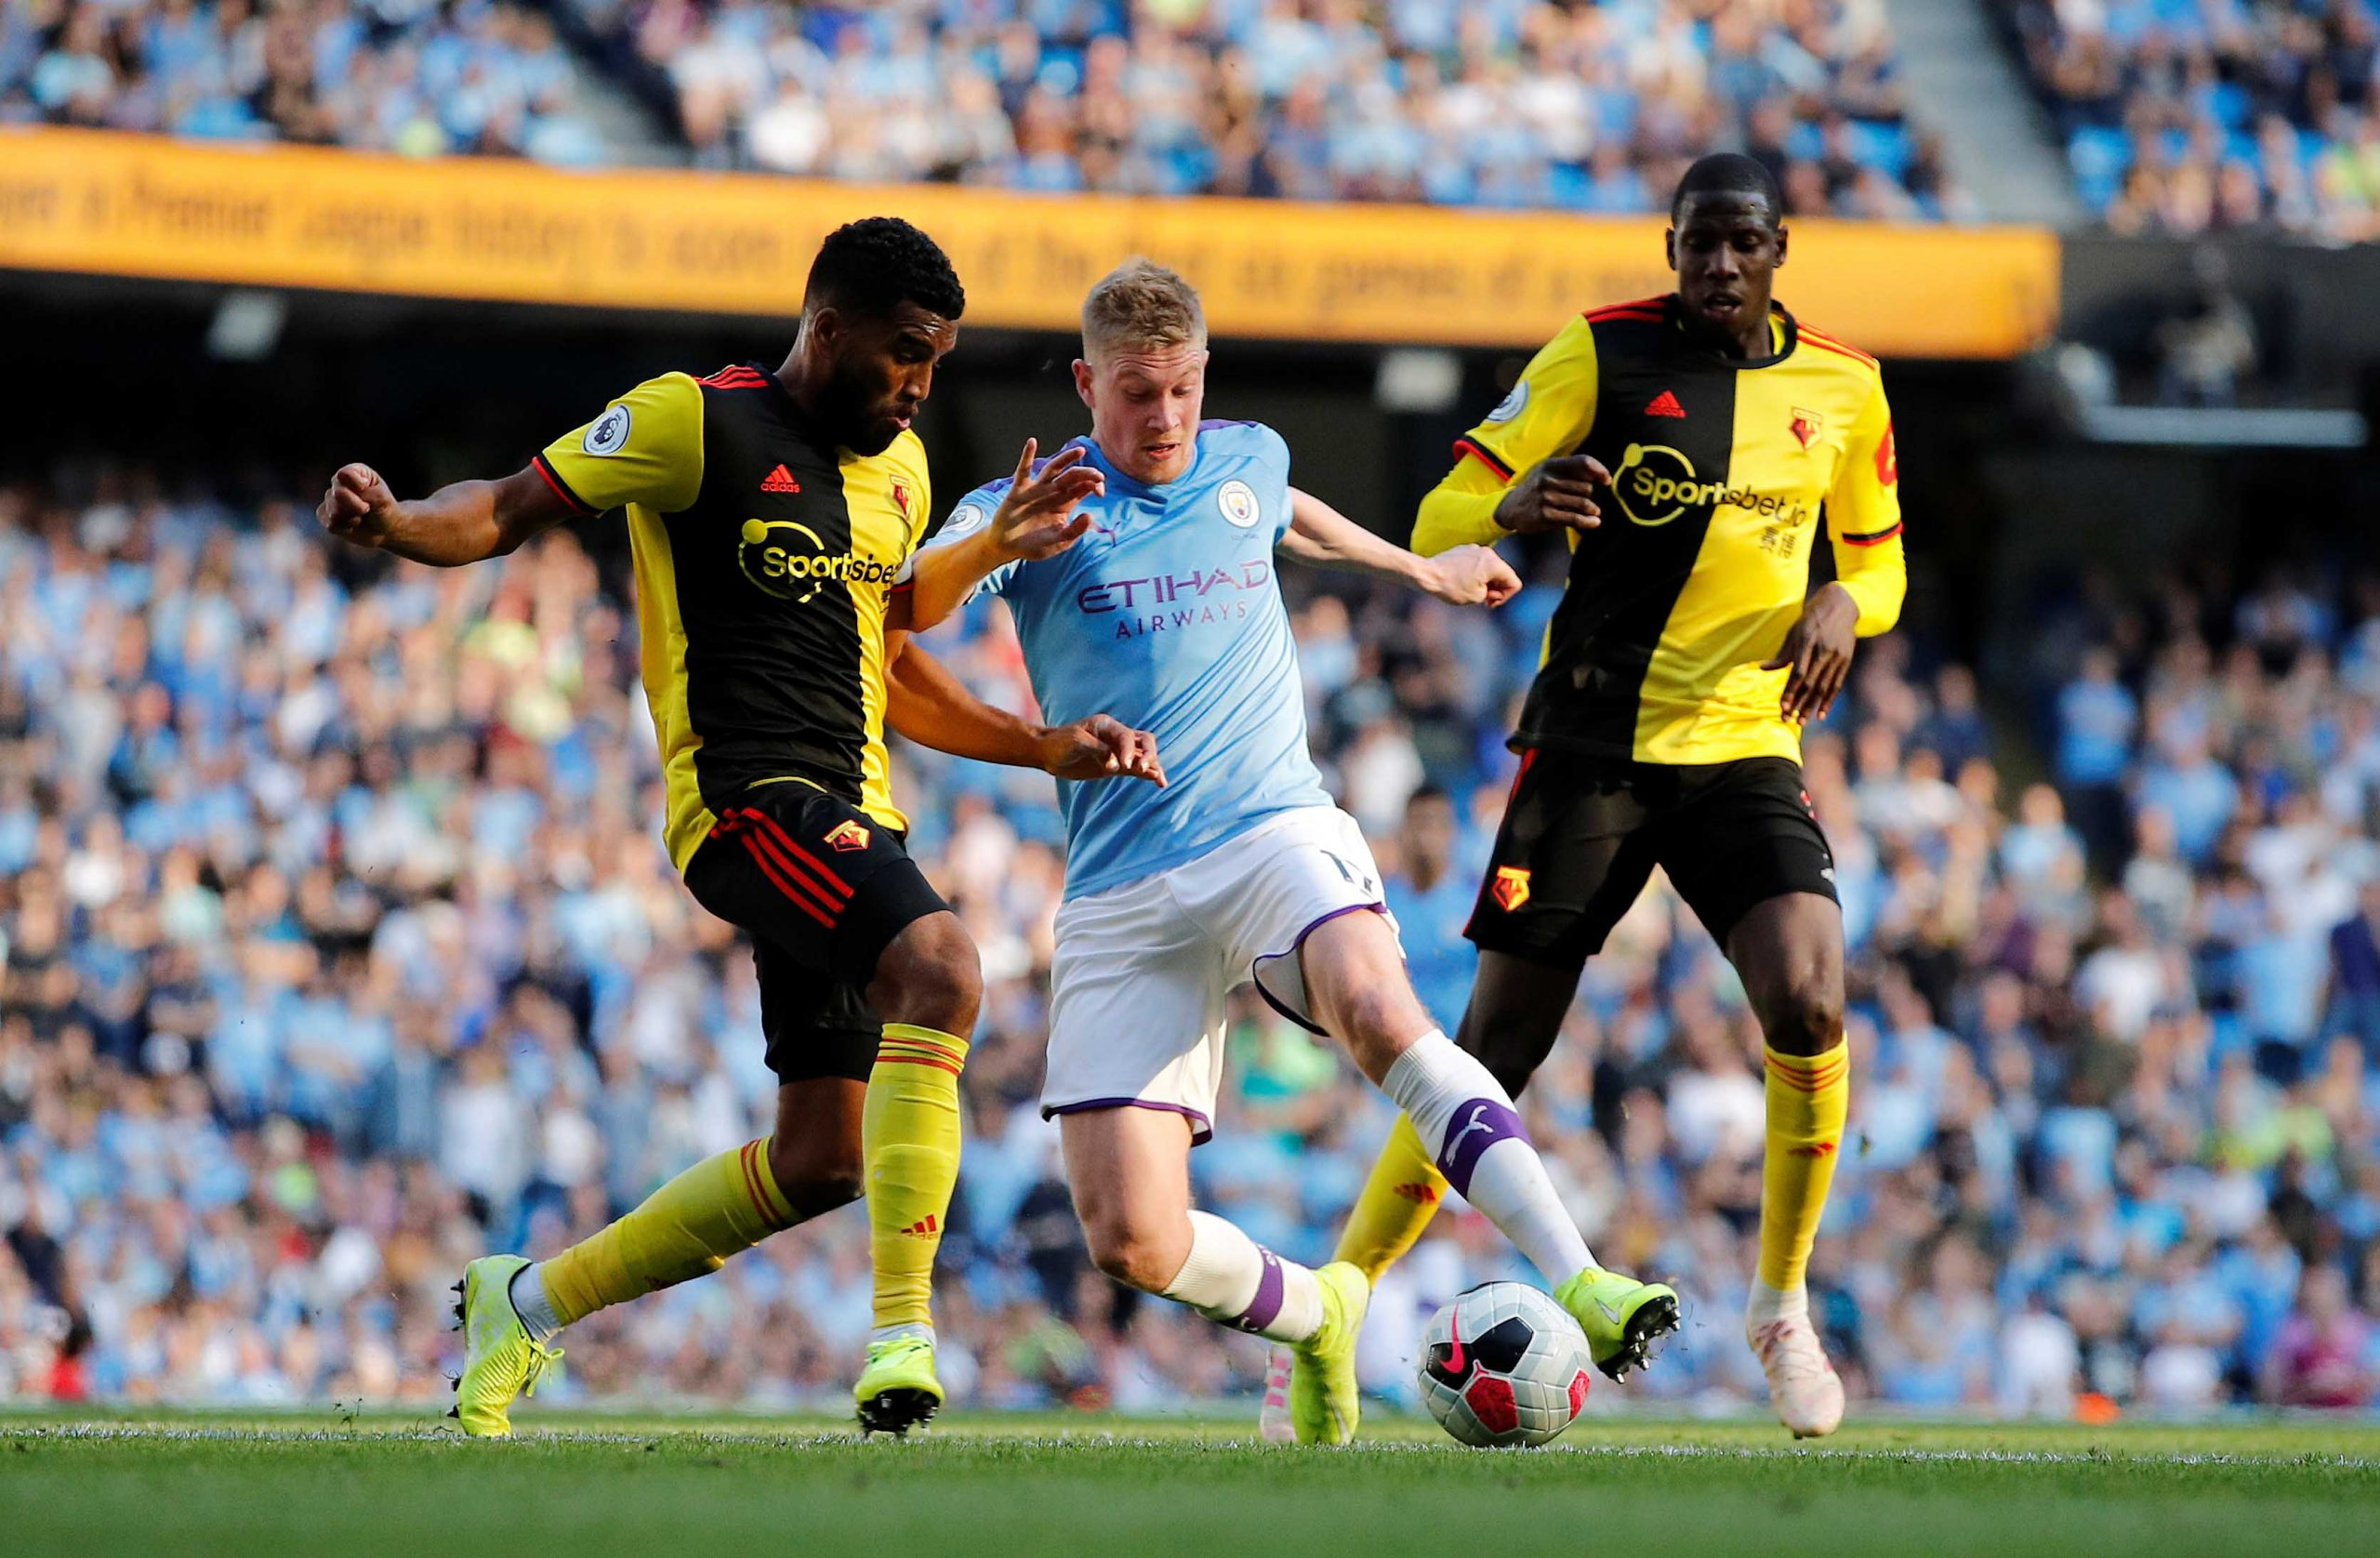 Man city vs watford betting odds betting odds explained each way magic